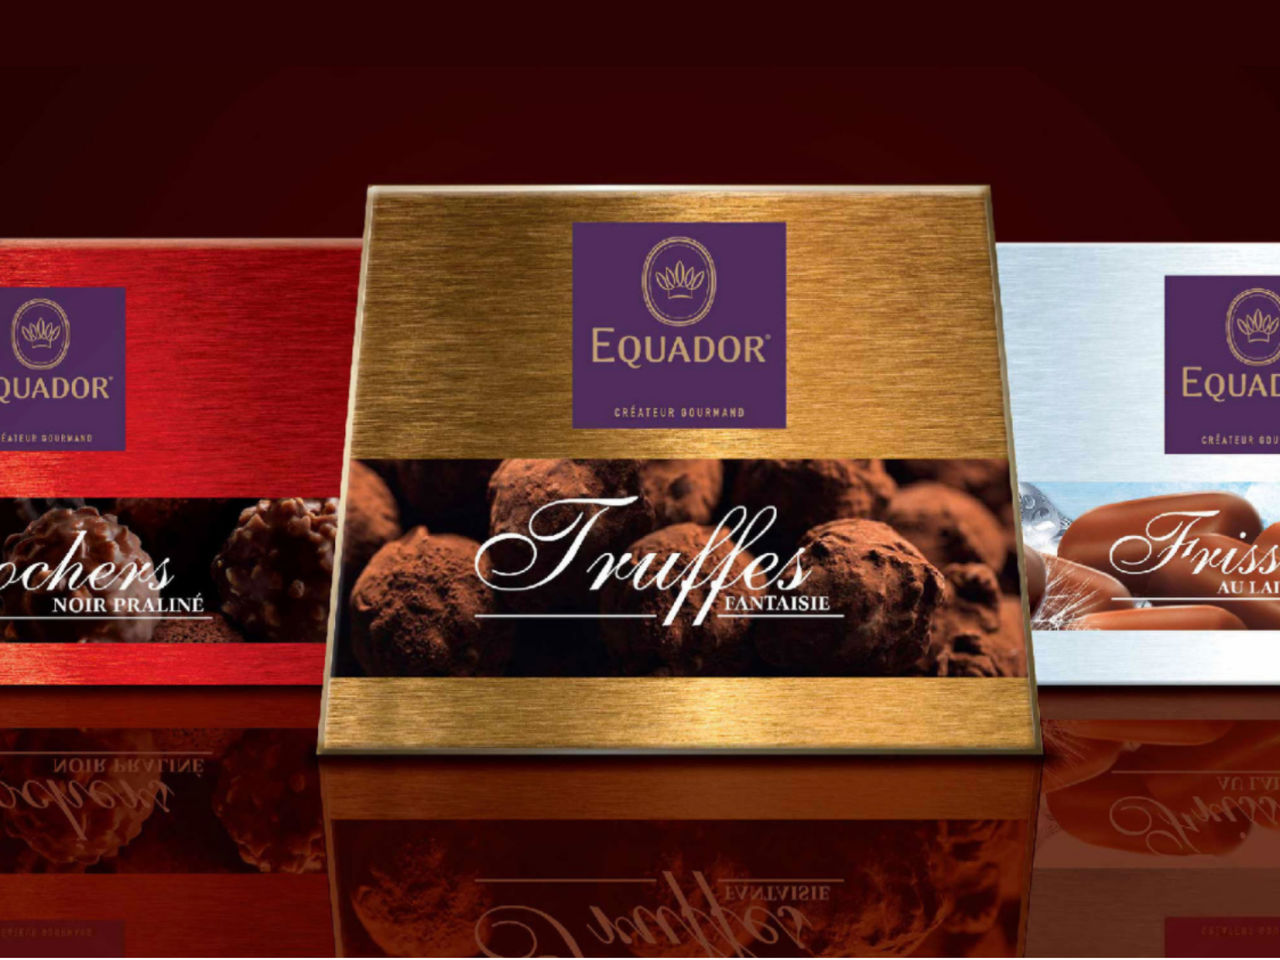 EQUADOR Chocolats